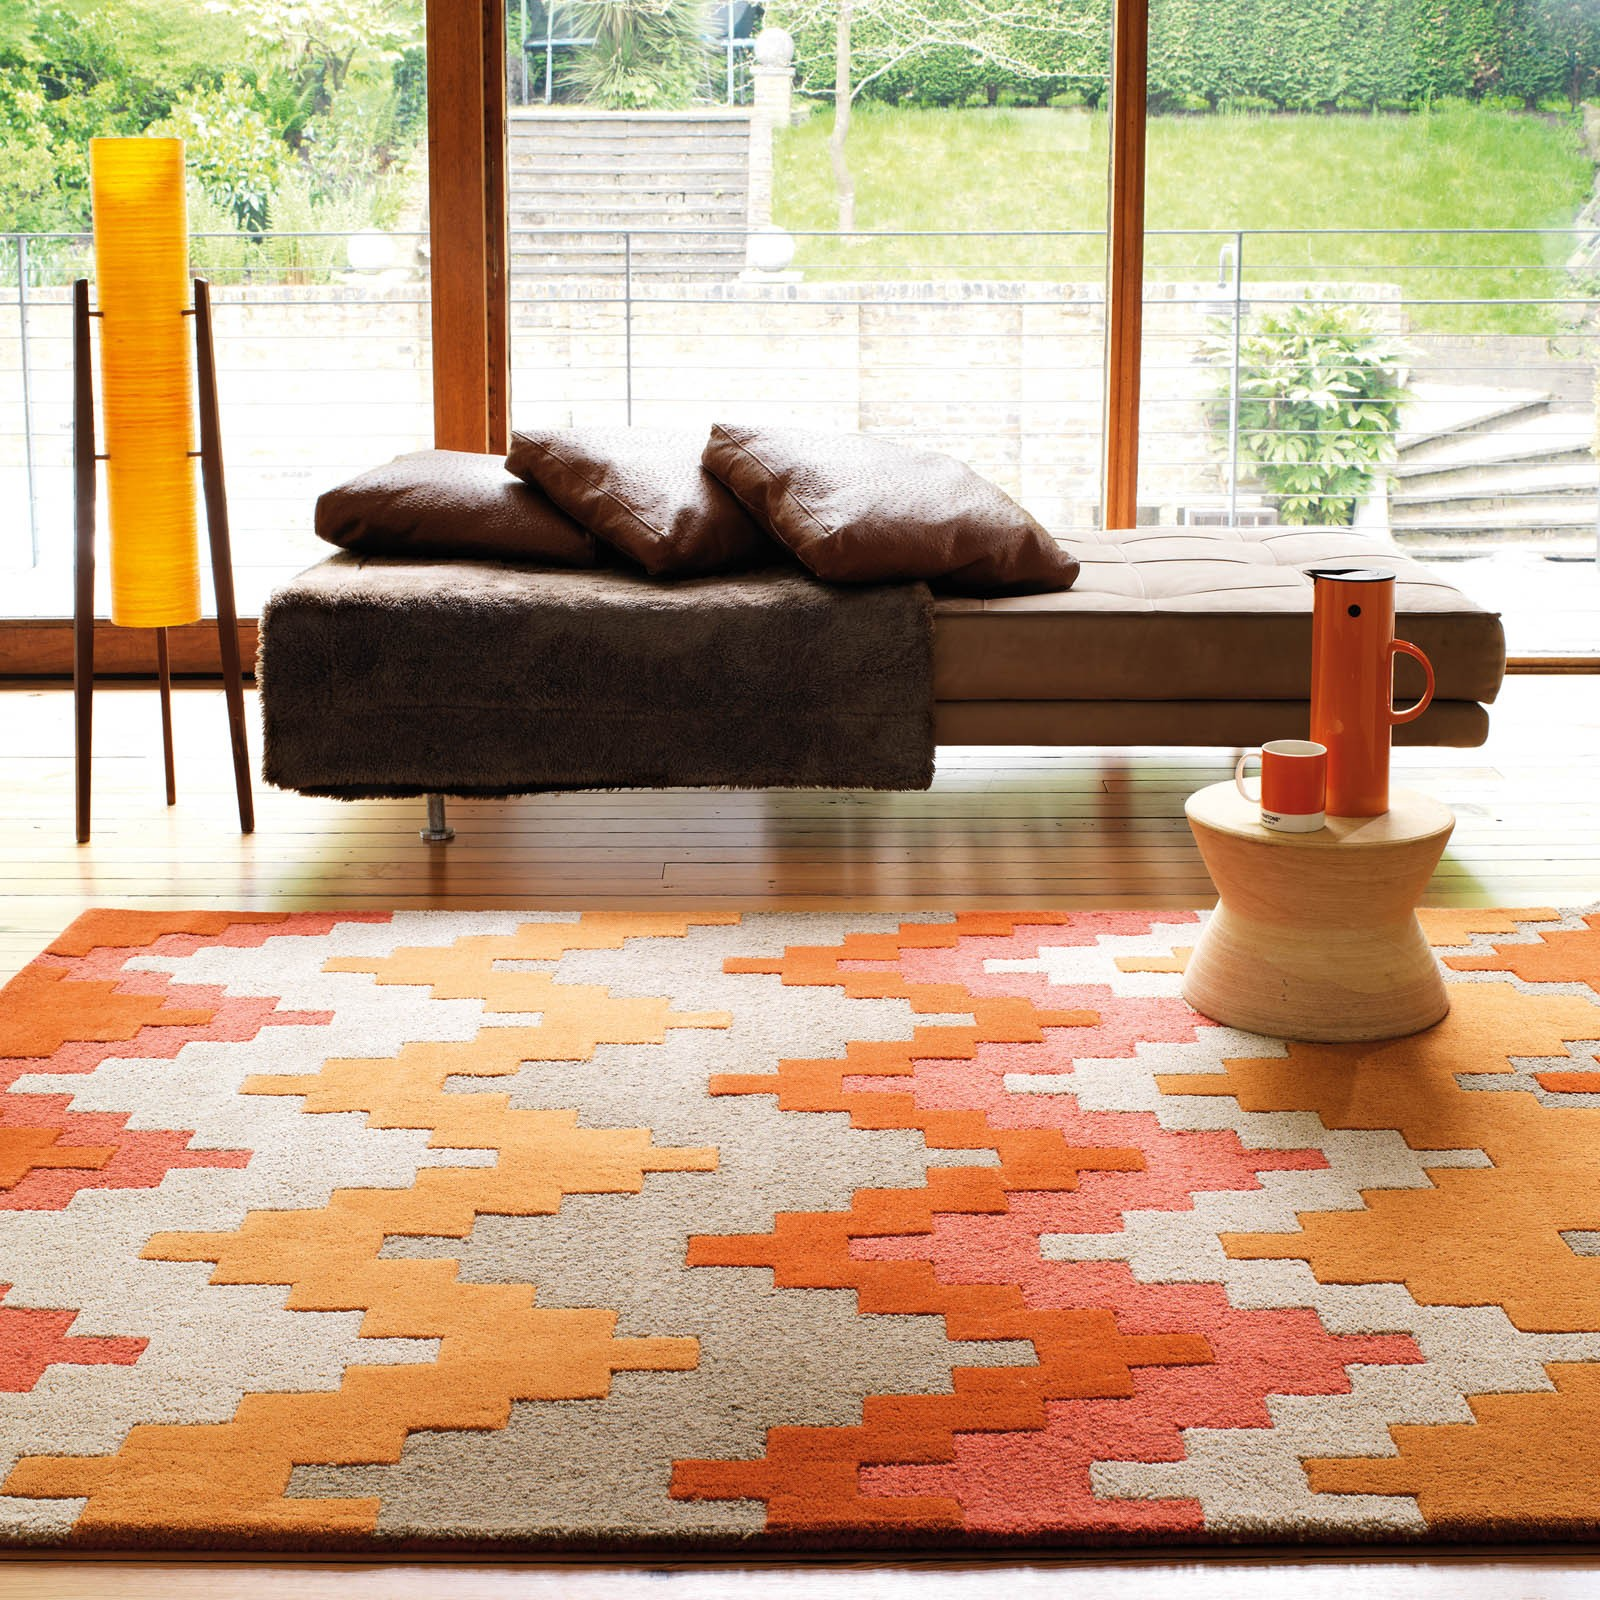 rug online chevron rugs buy online at the rug seller with free uk delivery new OVHPUZO